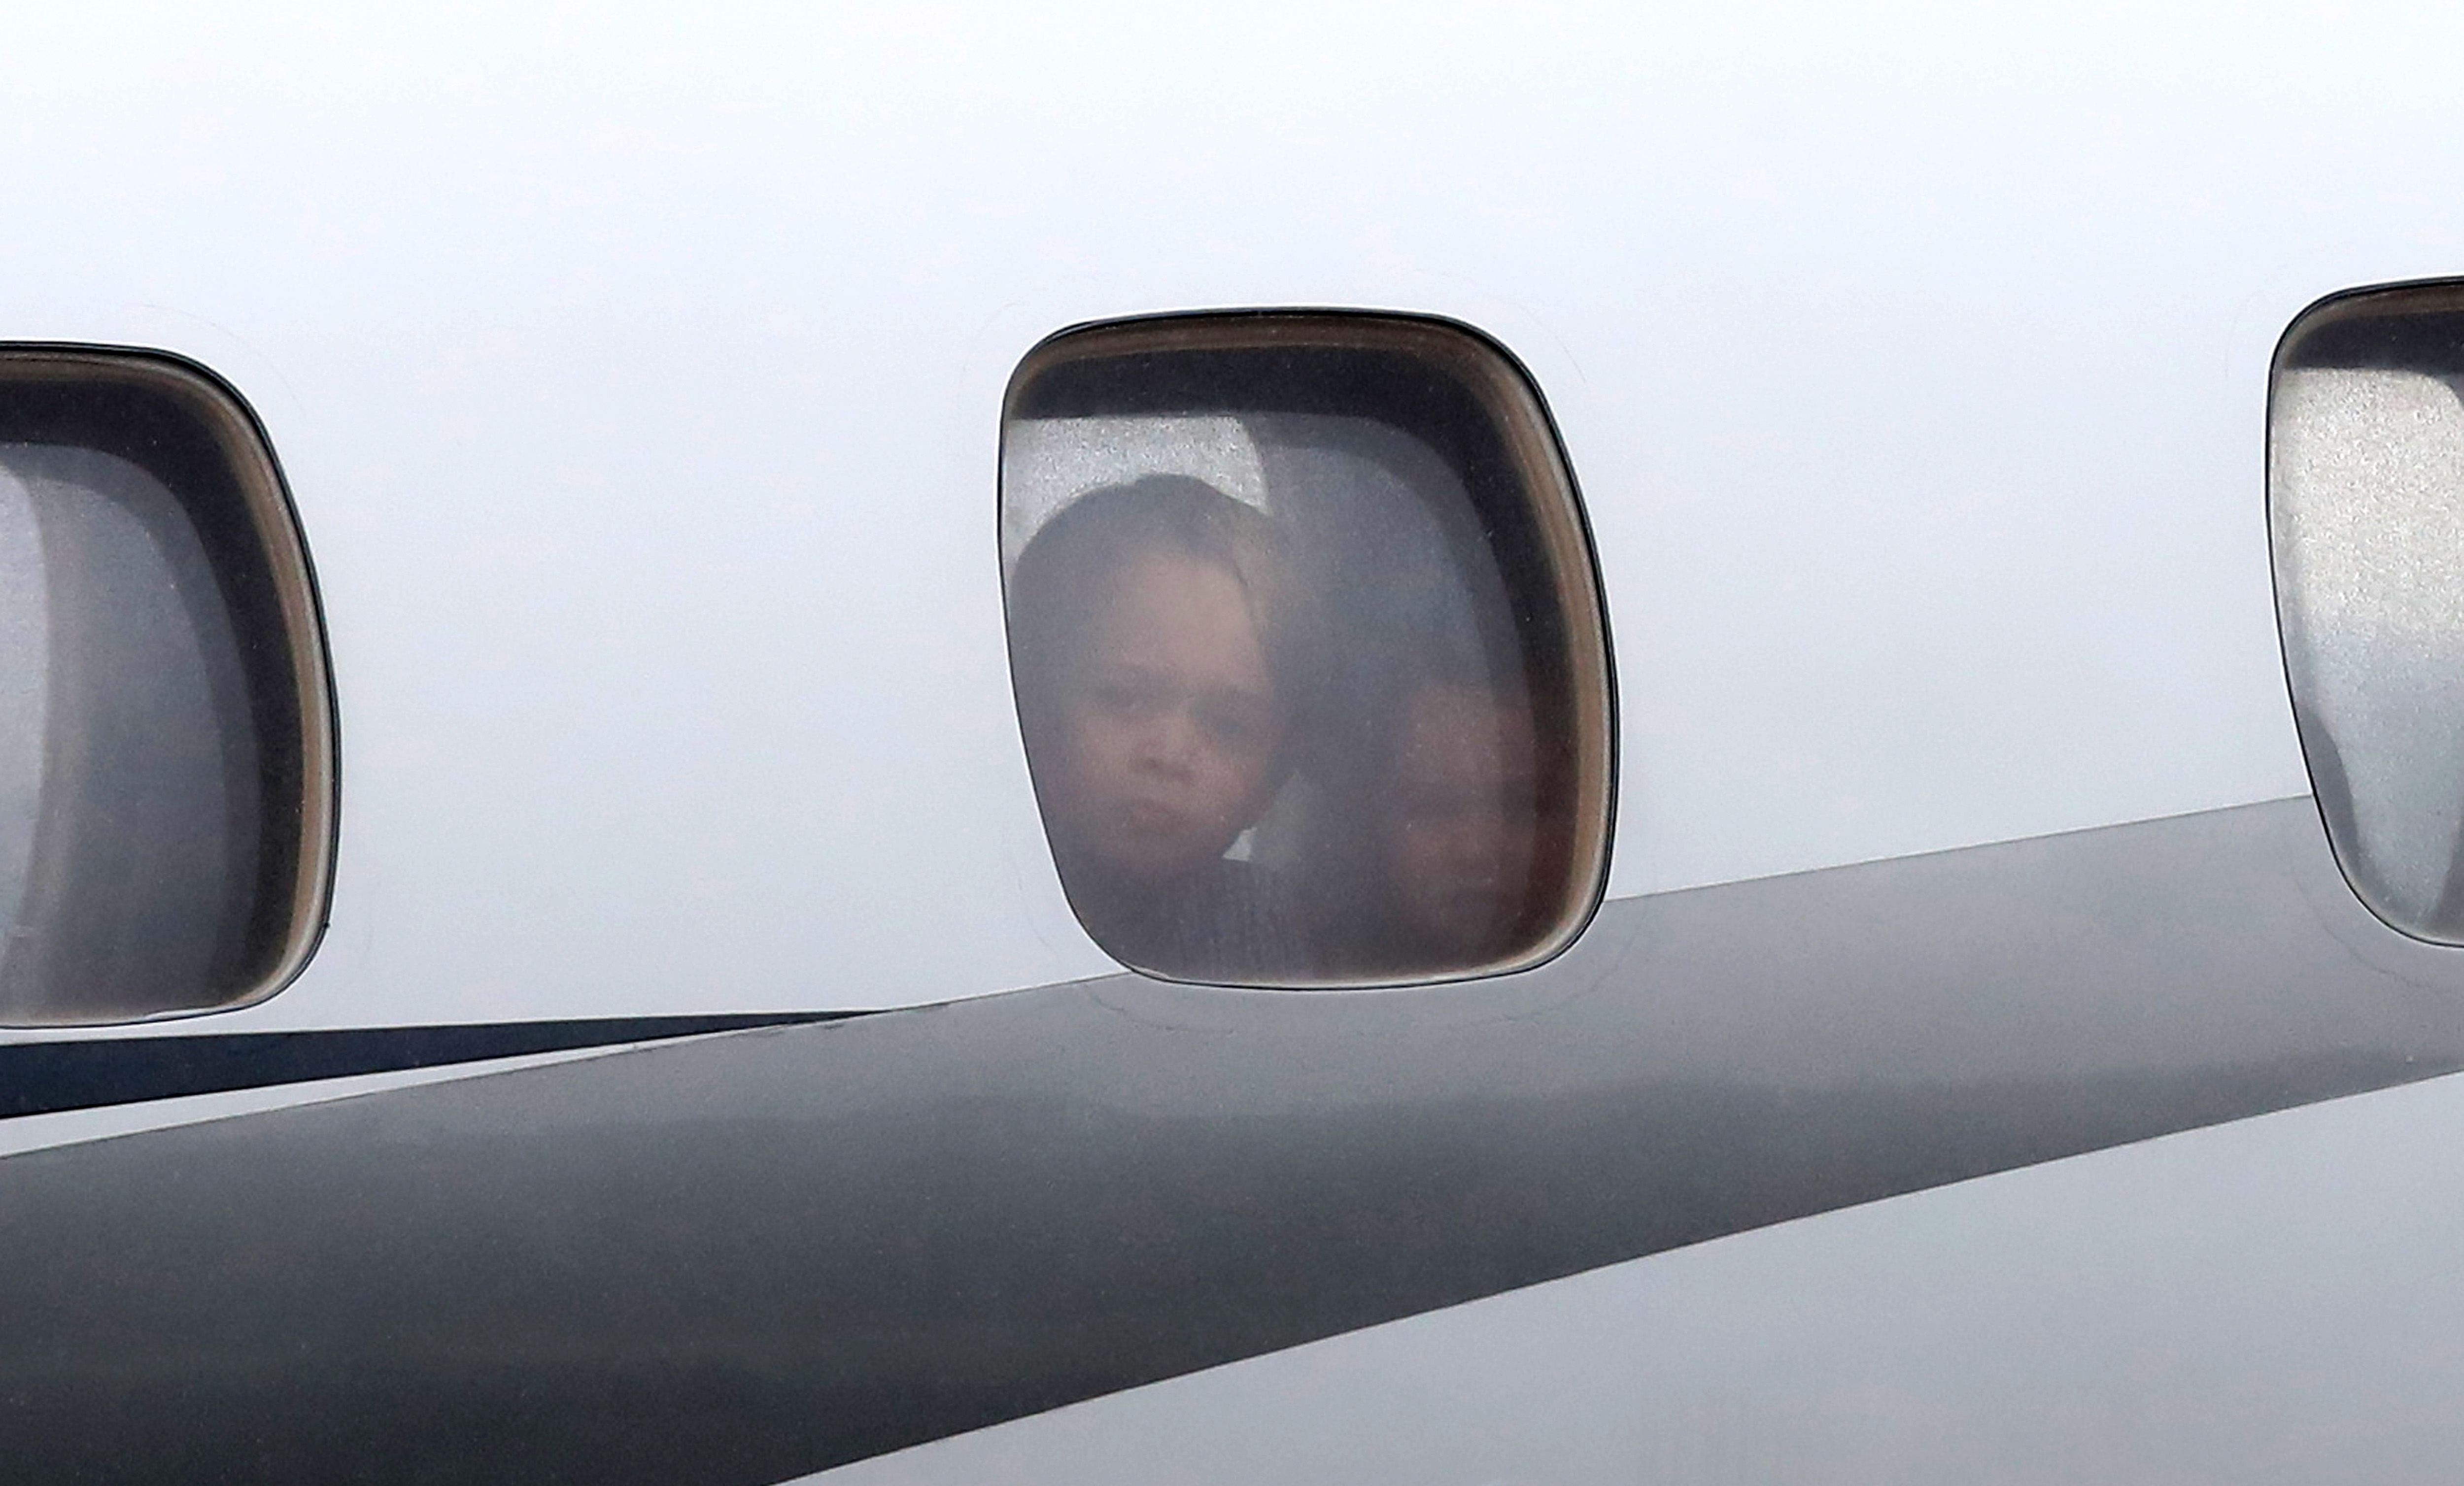 Prince George of Cambridge and Princess Charlotte of Cambridge peer out of a window as they arrive with Prince William, Duke of Cambridge and Catherine, Duchess of Cambridge on day 1 of their official visit to Poland.